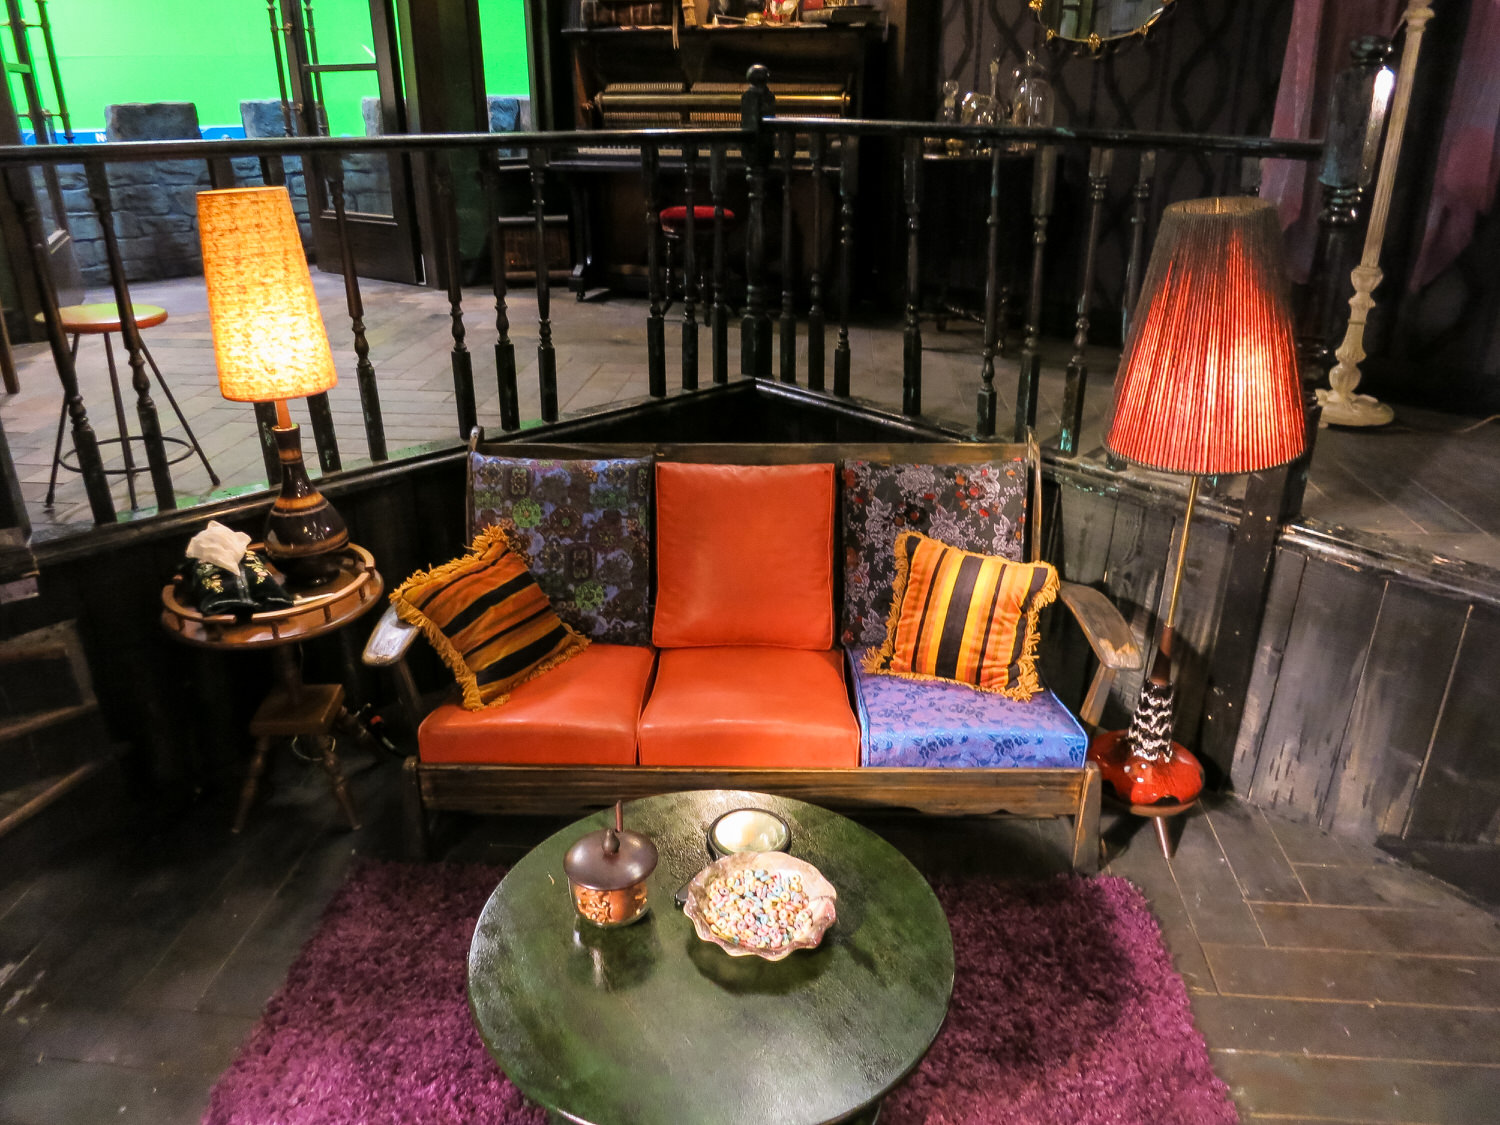 The mis-matched sofa in Maleficent's sunken living room.